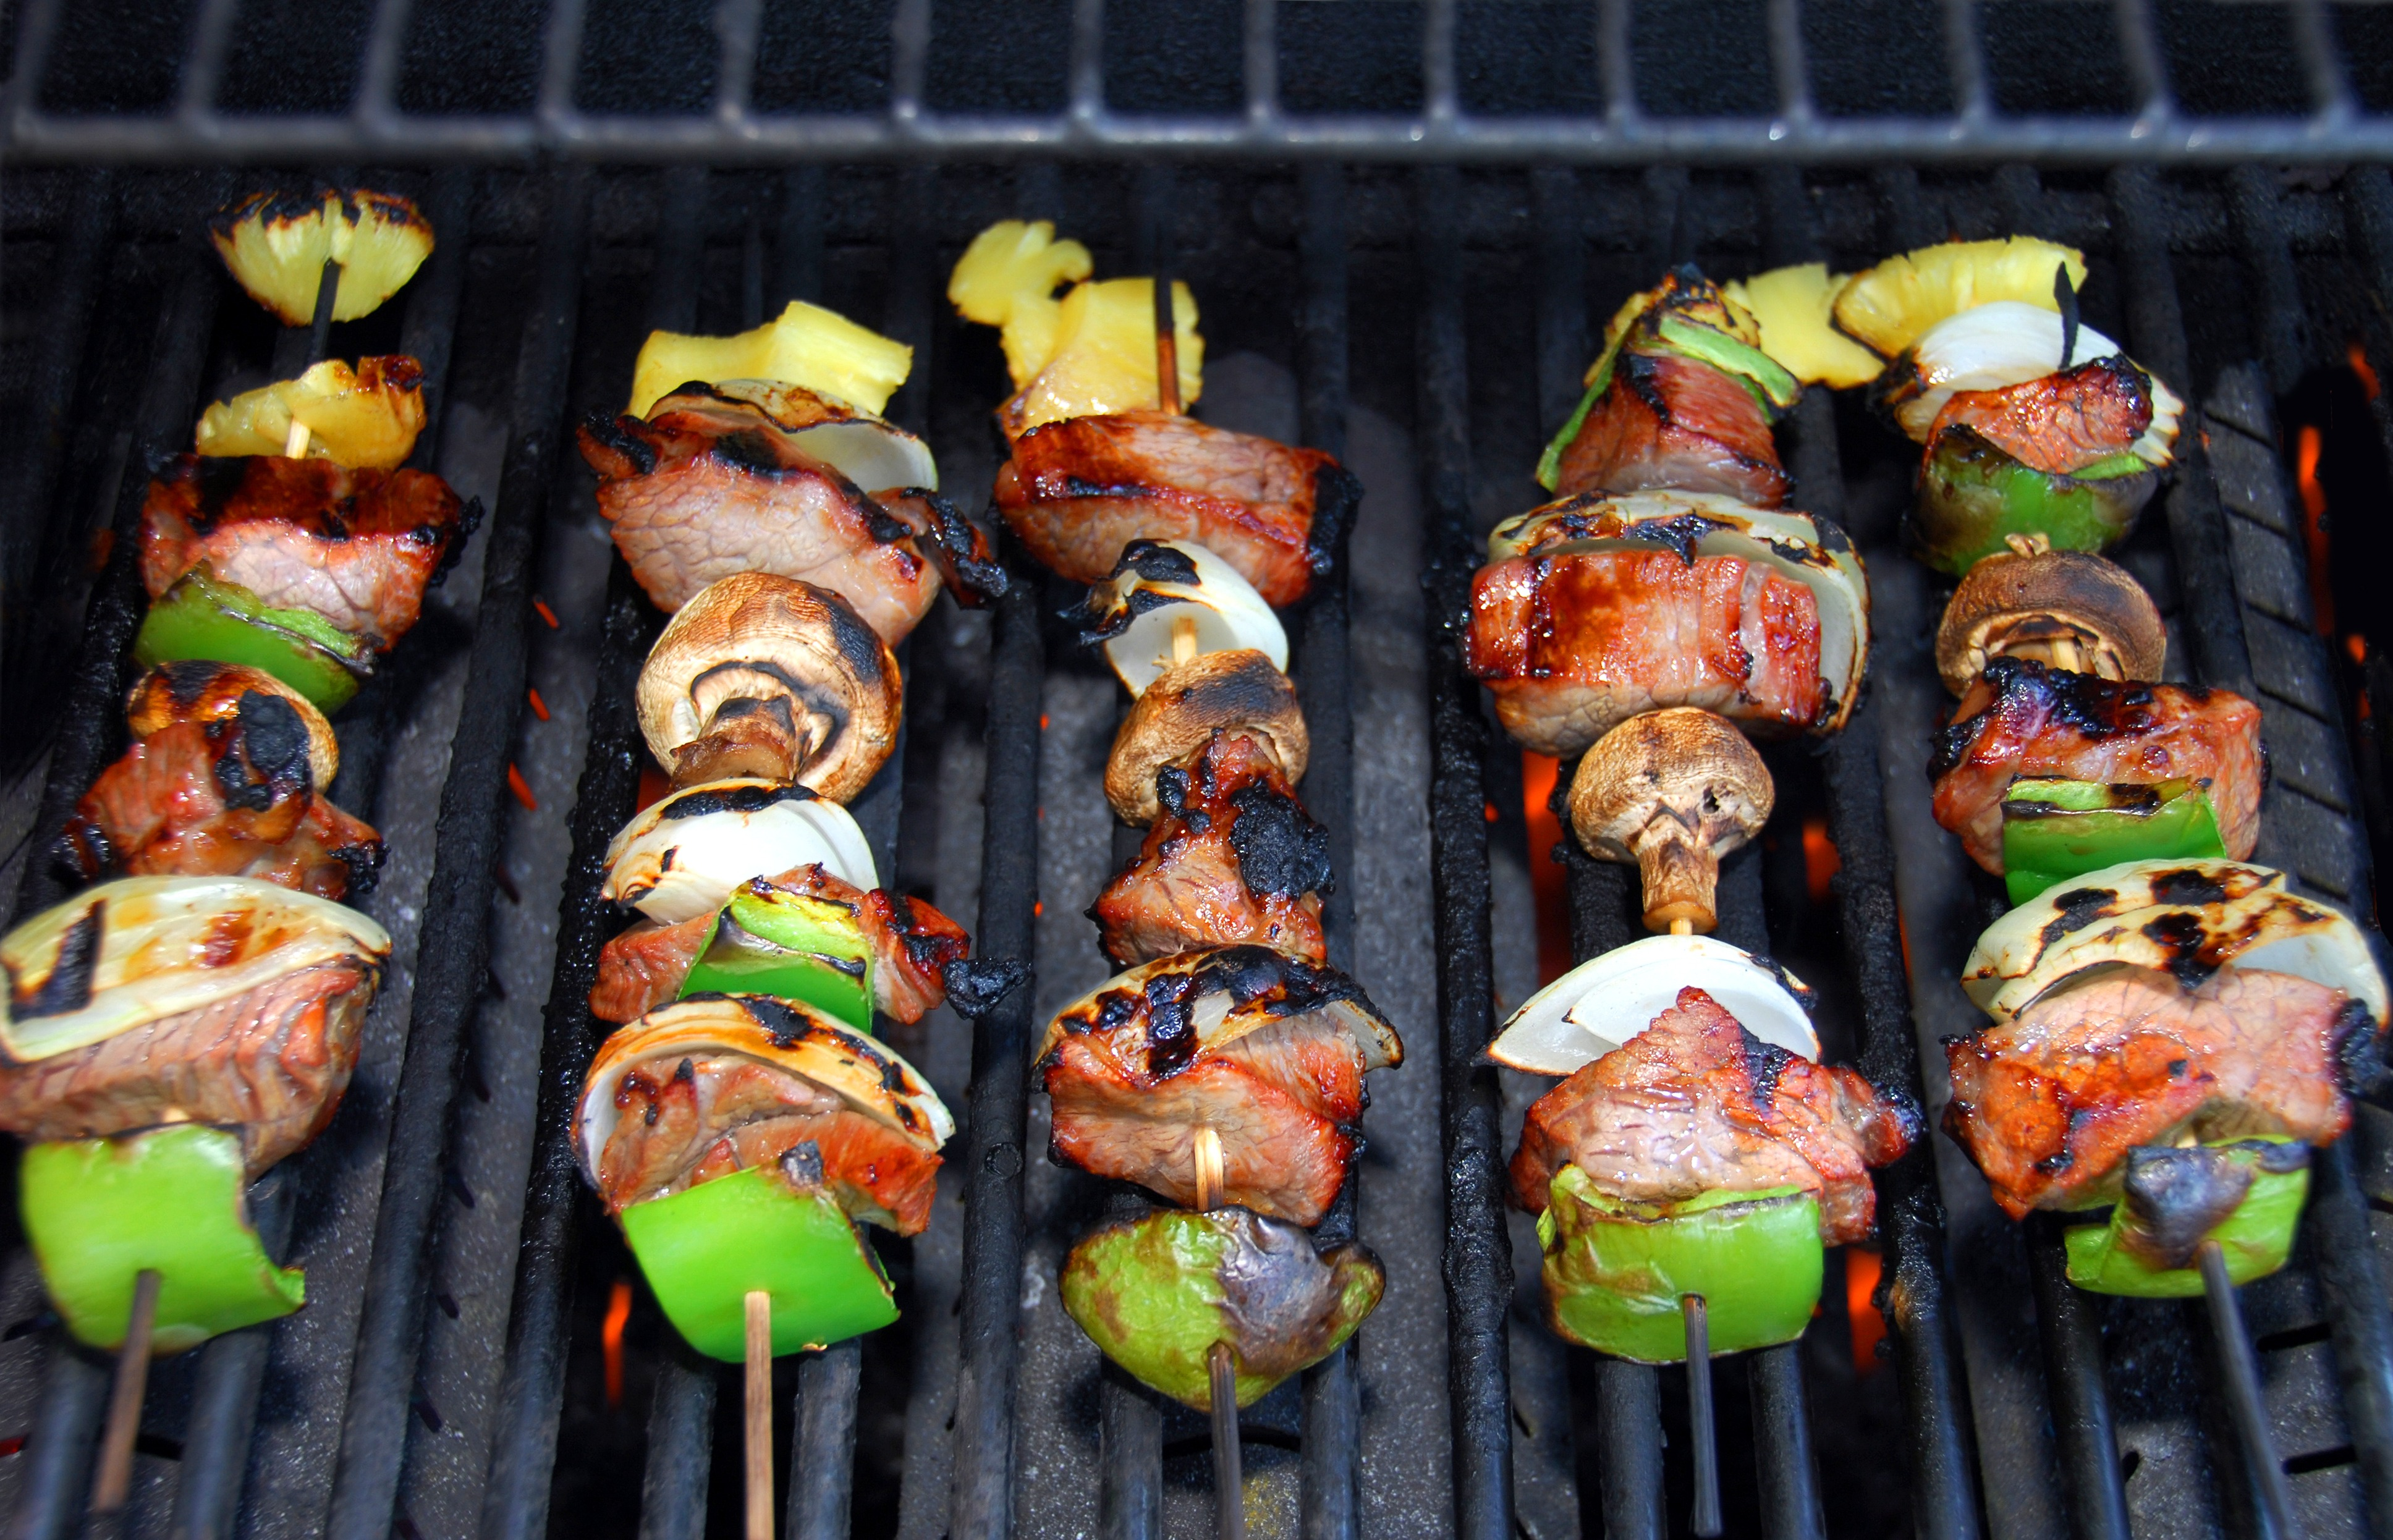 barbeque with vegetable